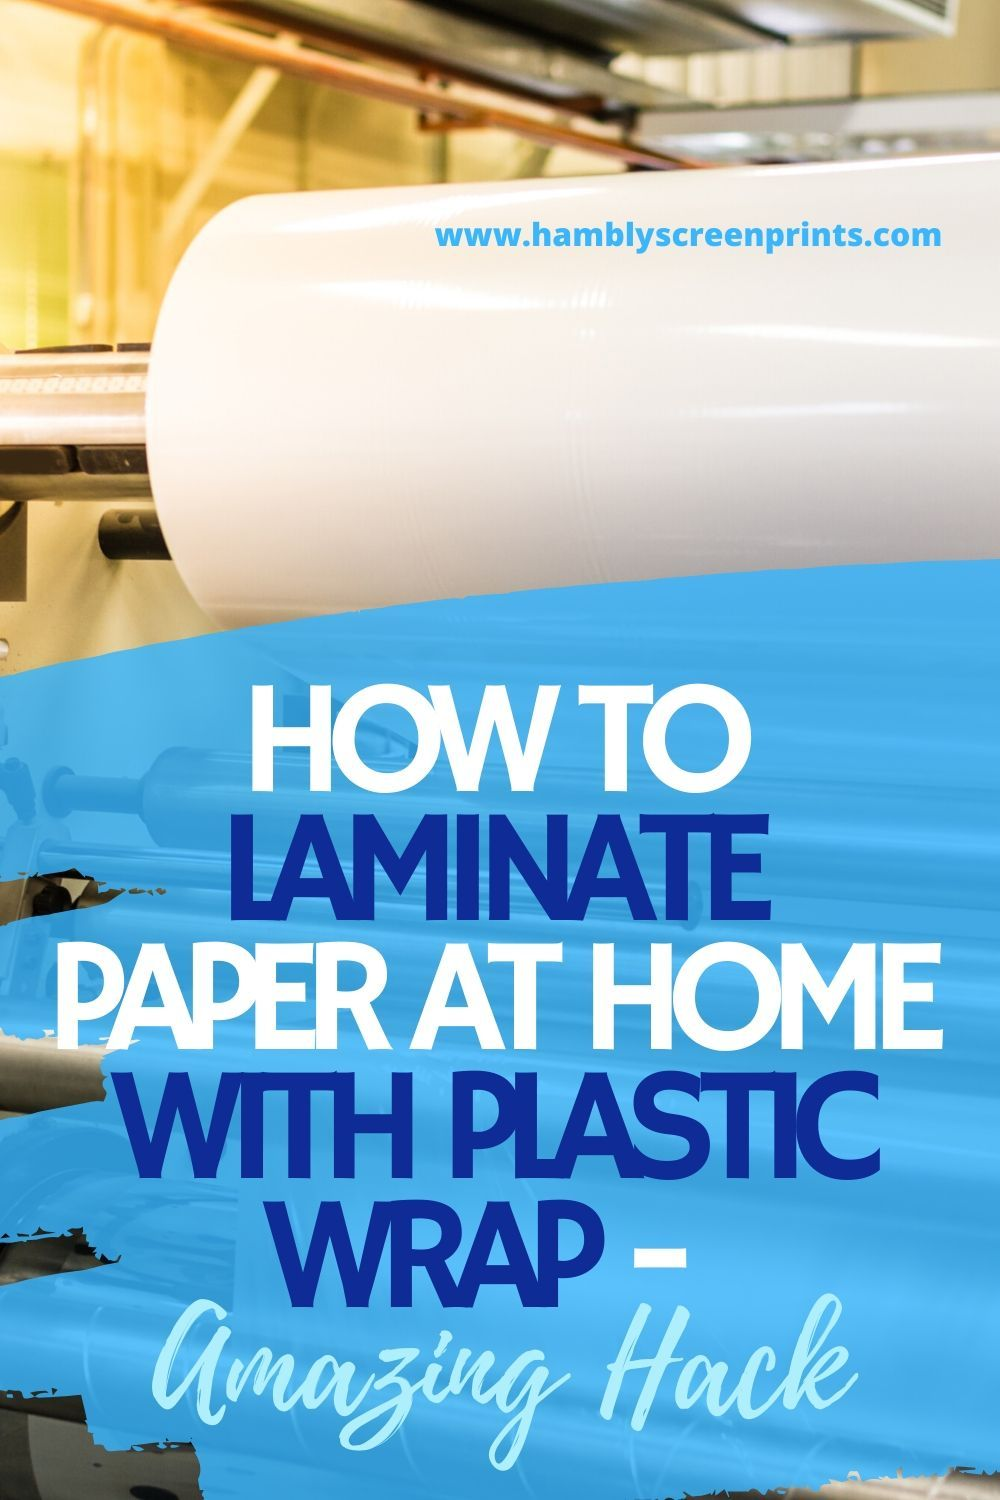 How To Laminate Paper At Home With